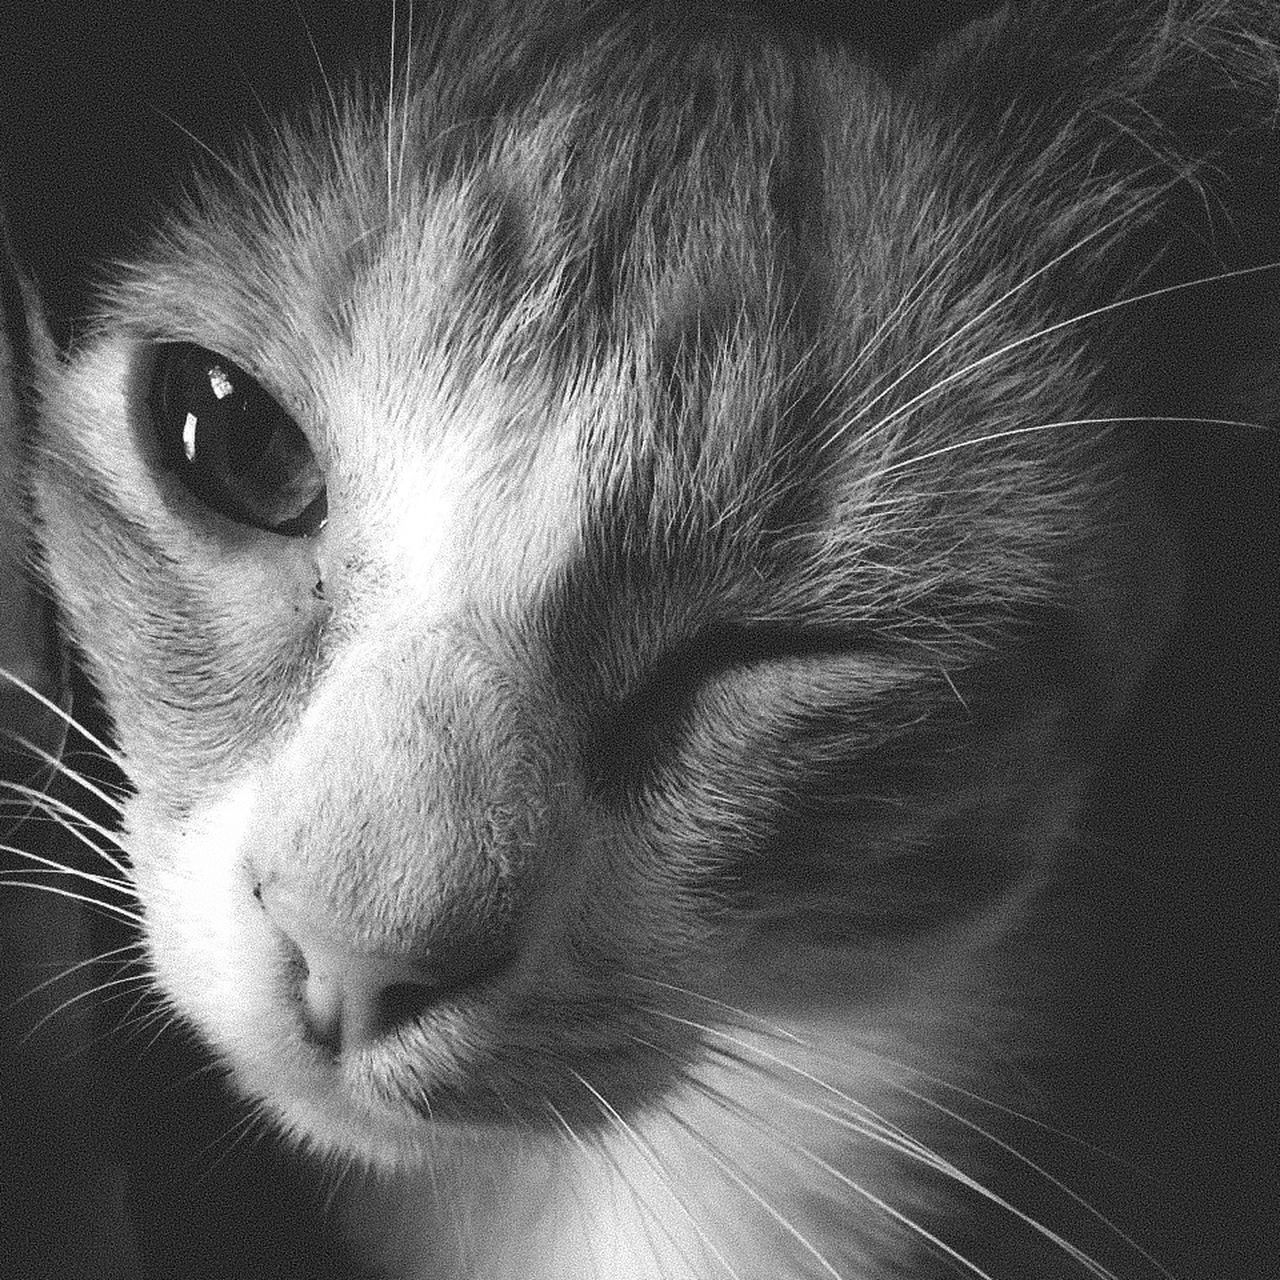 Cat Animal Themes Black And White Blackandwhite Close-up Domestic Animals Domestic Cat Feline Indoors  Mammal No People One Animal Pets Portrait Wink